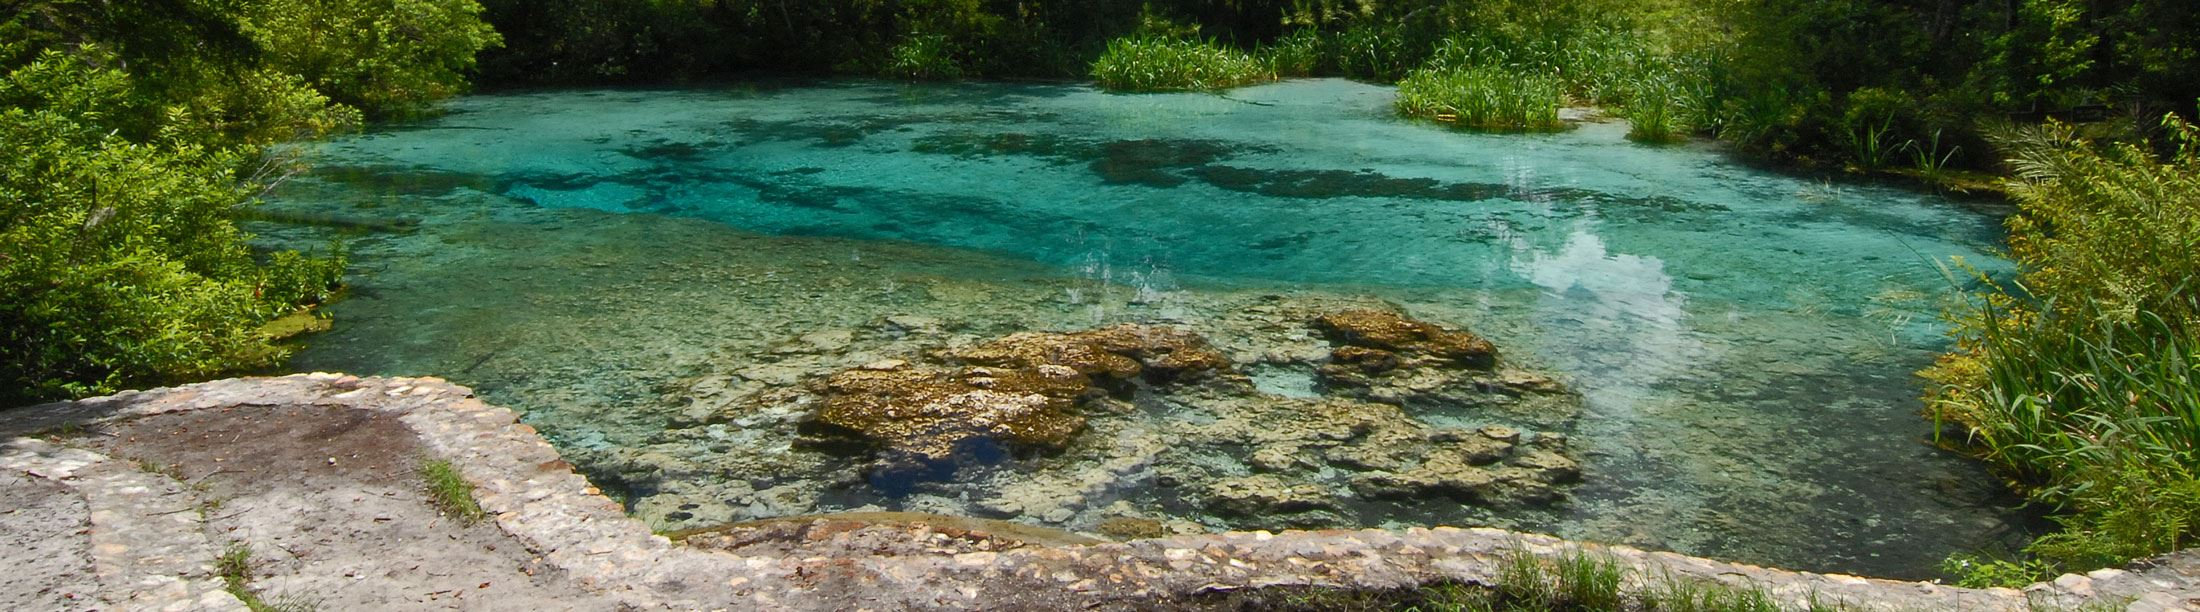 Clear, blue water at Ichetuckenee Springs